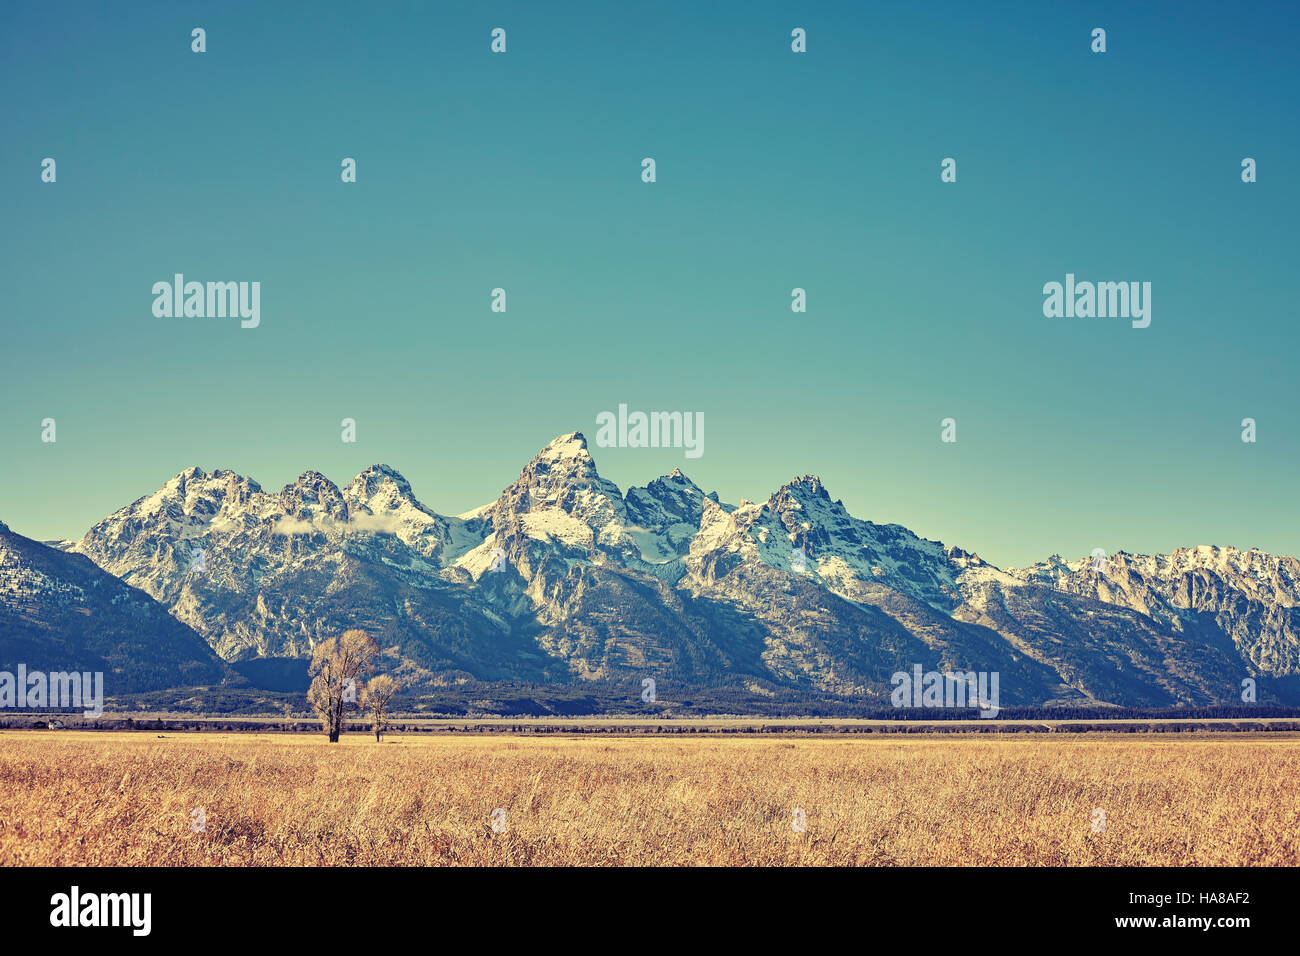 Retrò vista dai toni del Grand Teton mountain range, Wyoming negli Stati Uniti. Immagini Stock